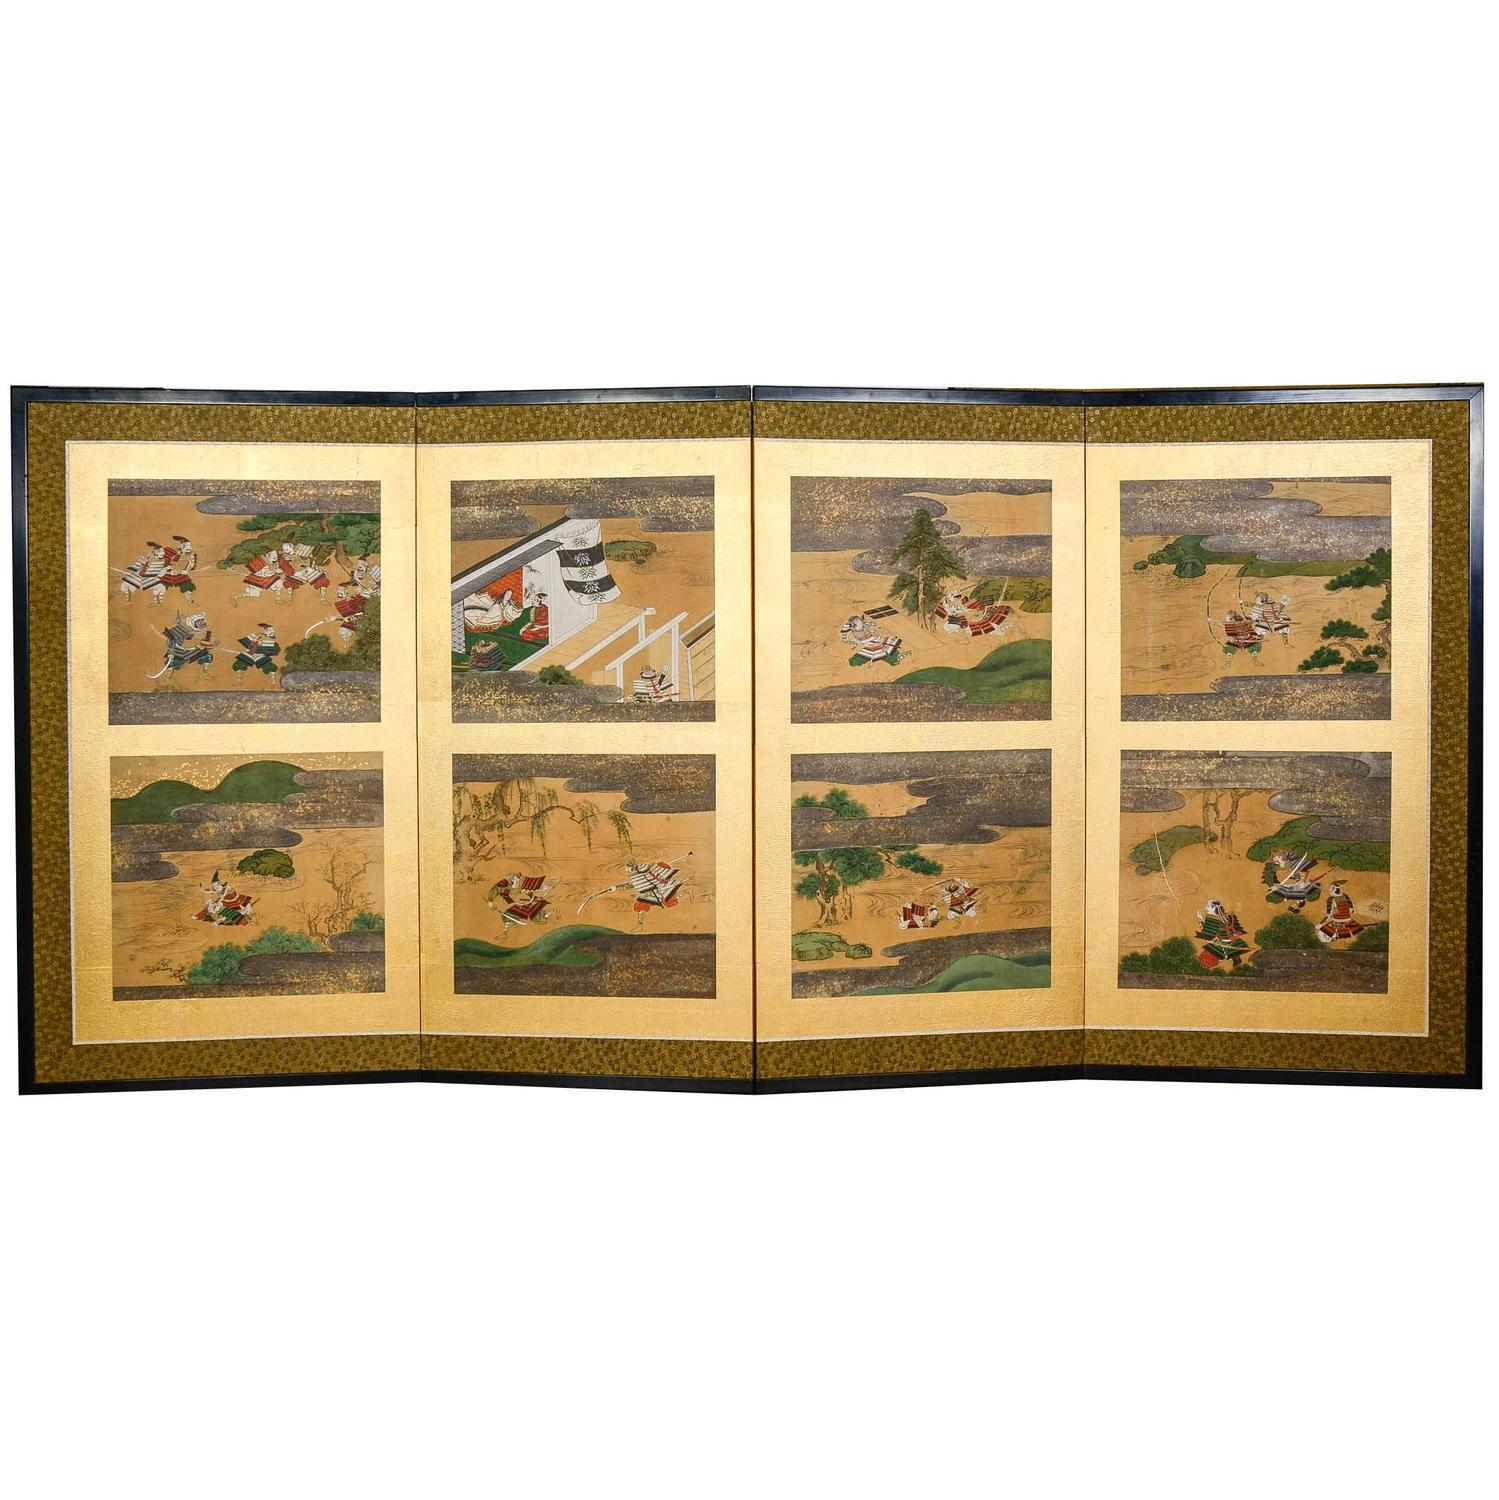 Japanese Silk Paintings - 113 For Sale on 1stdibs